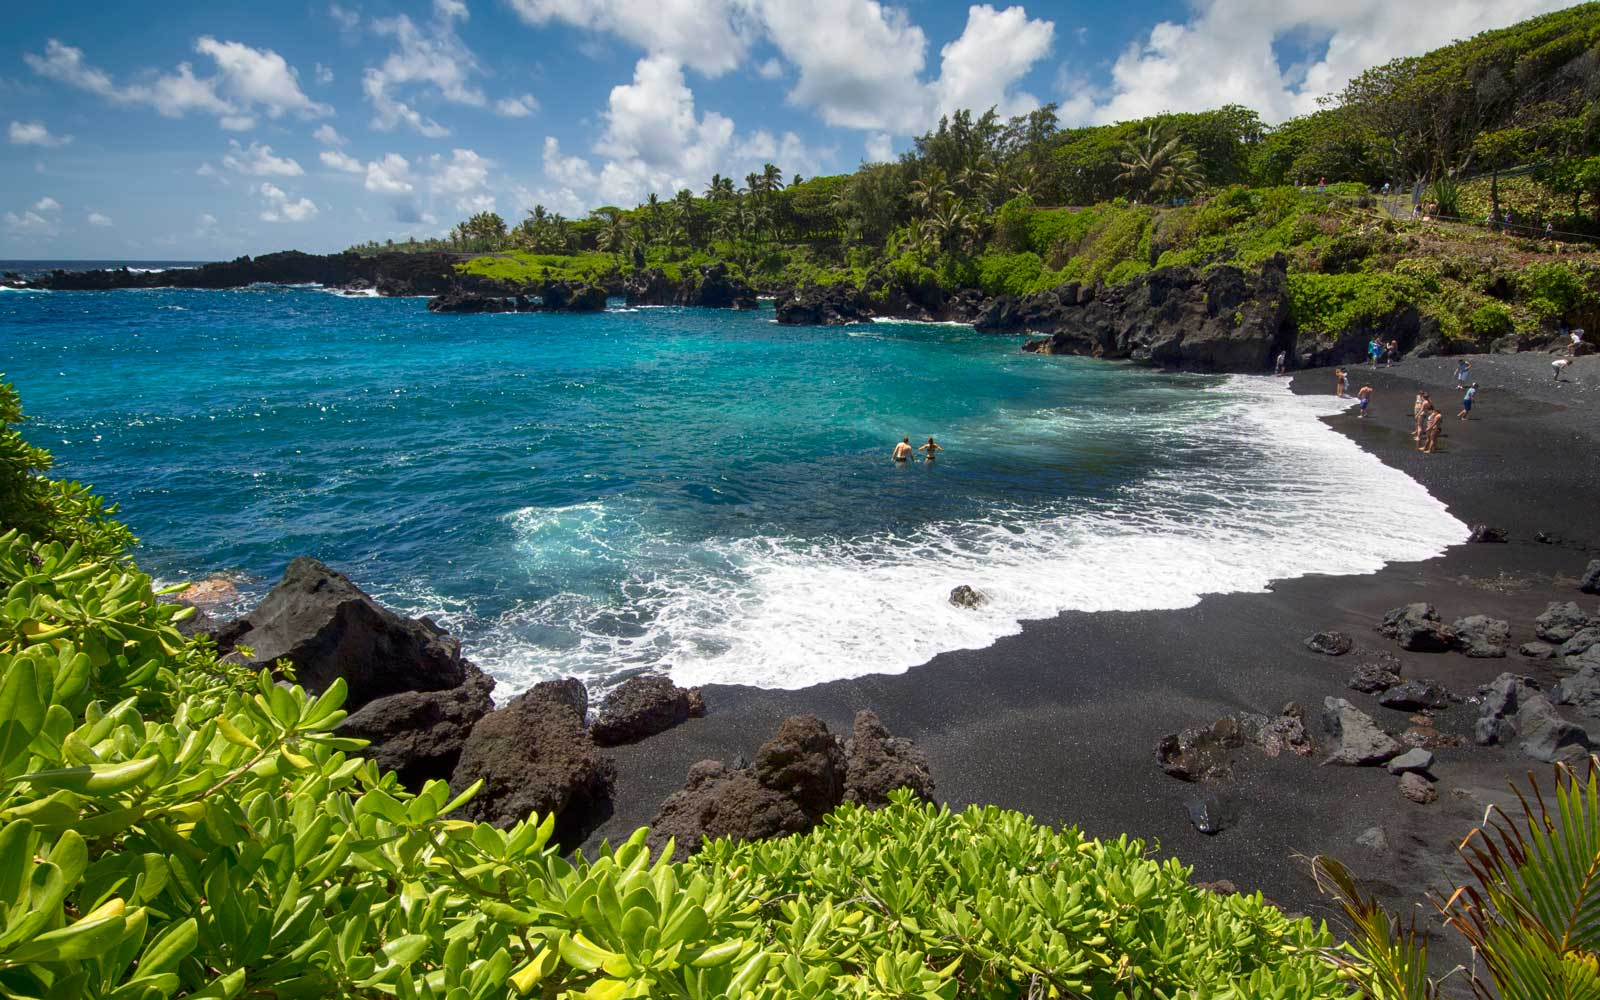 Black Sand Beach on Maui island, Hawaii